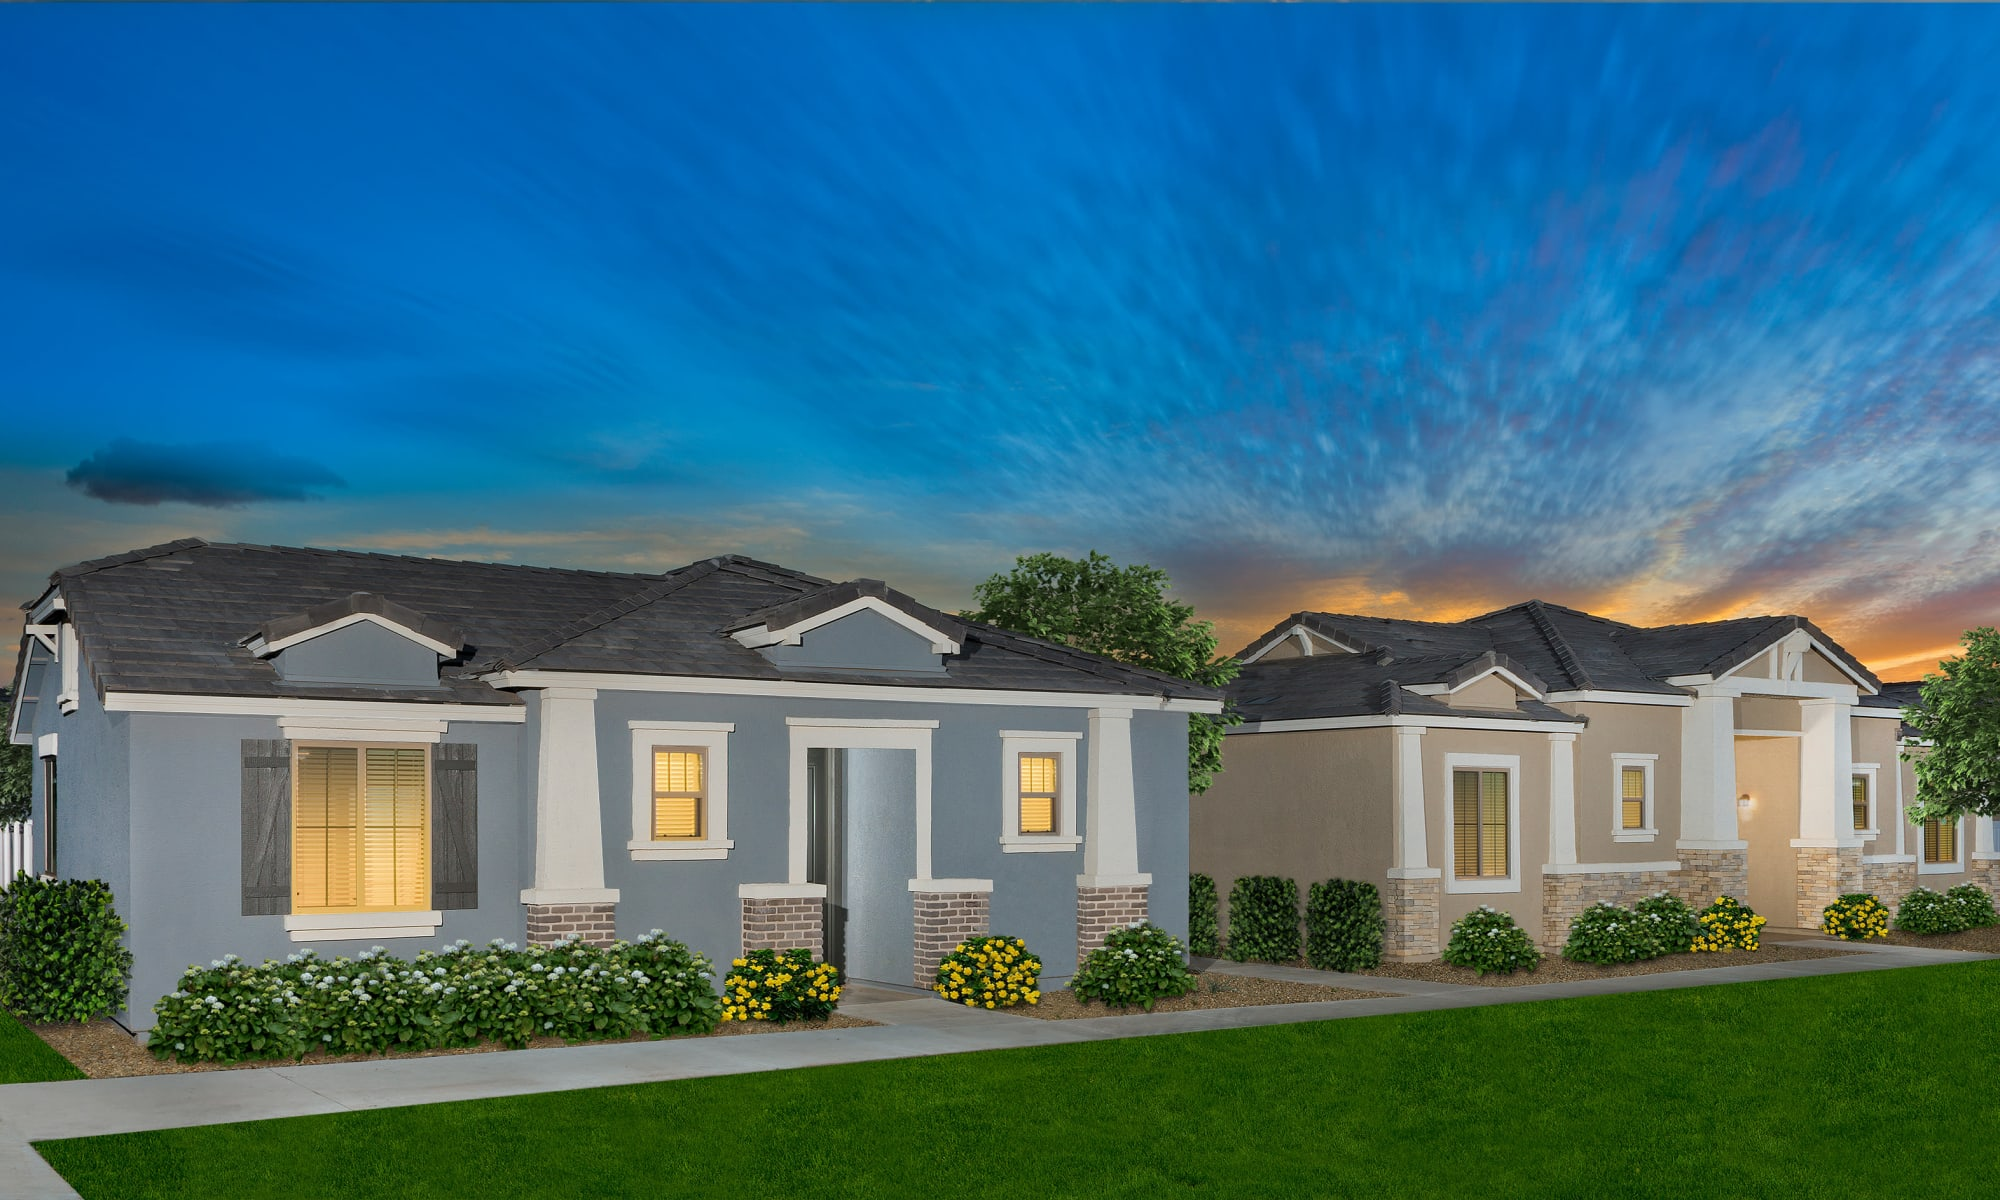 Houses at Christopher Todd Communities On Mountain View in Surprise, Arizona